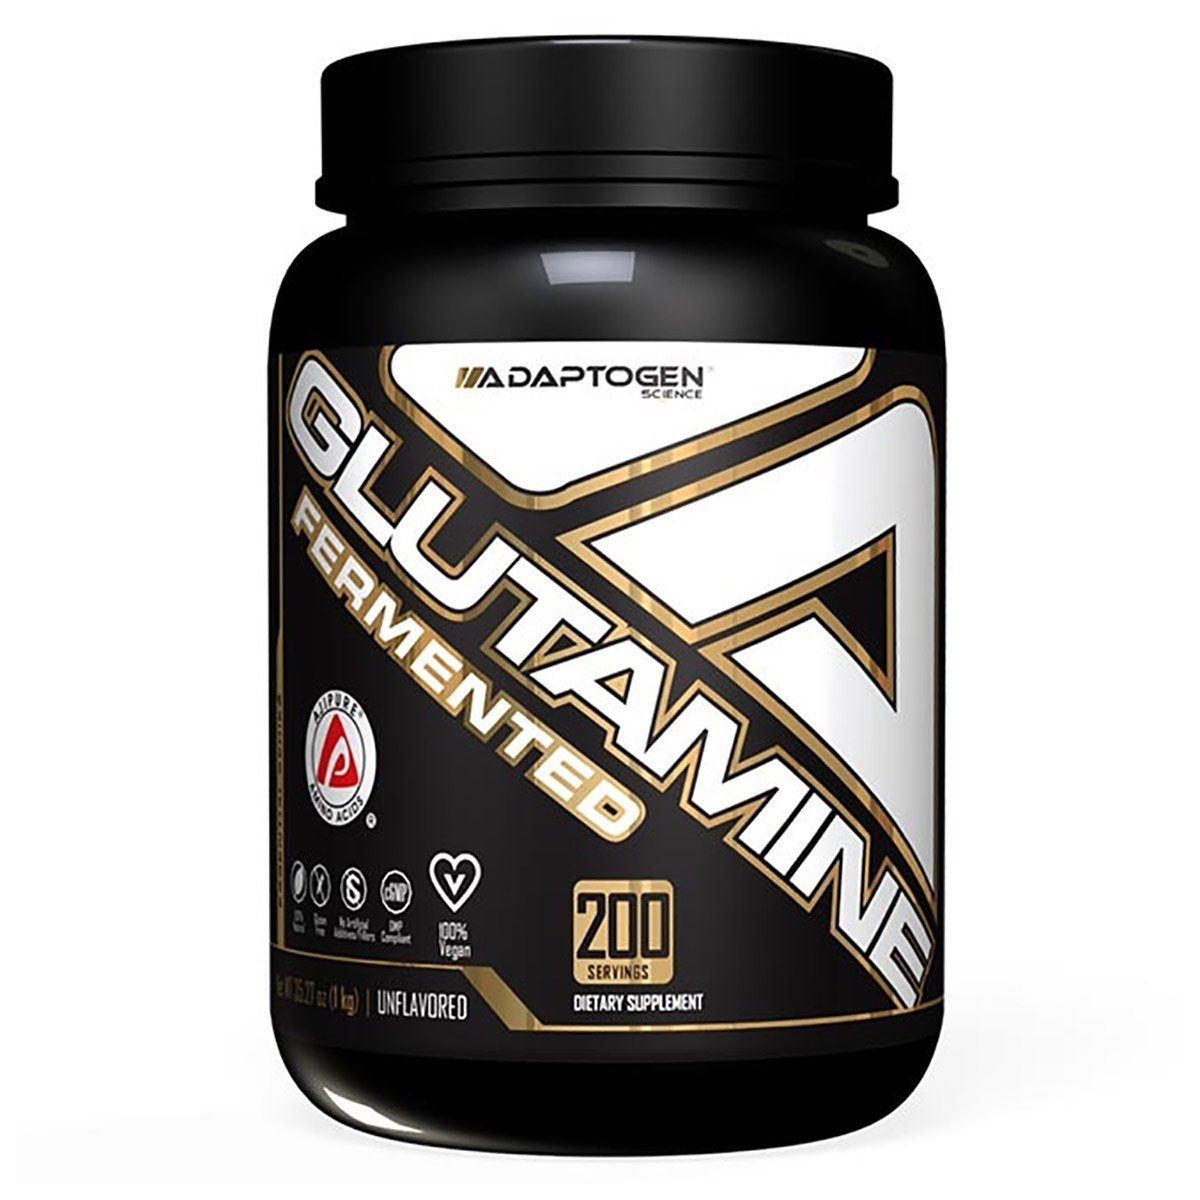 Adaptogen Science Glutamine 200 servings Amino Acids Adaptogen Science  (1424014966827)